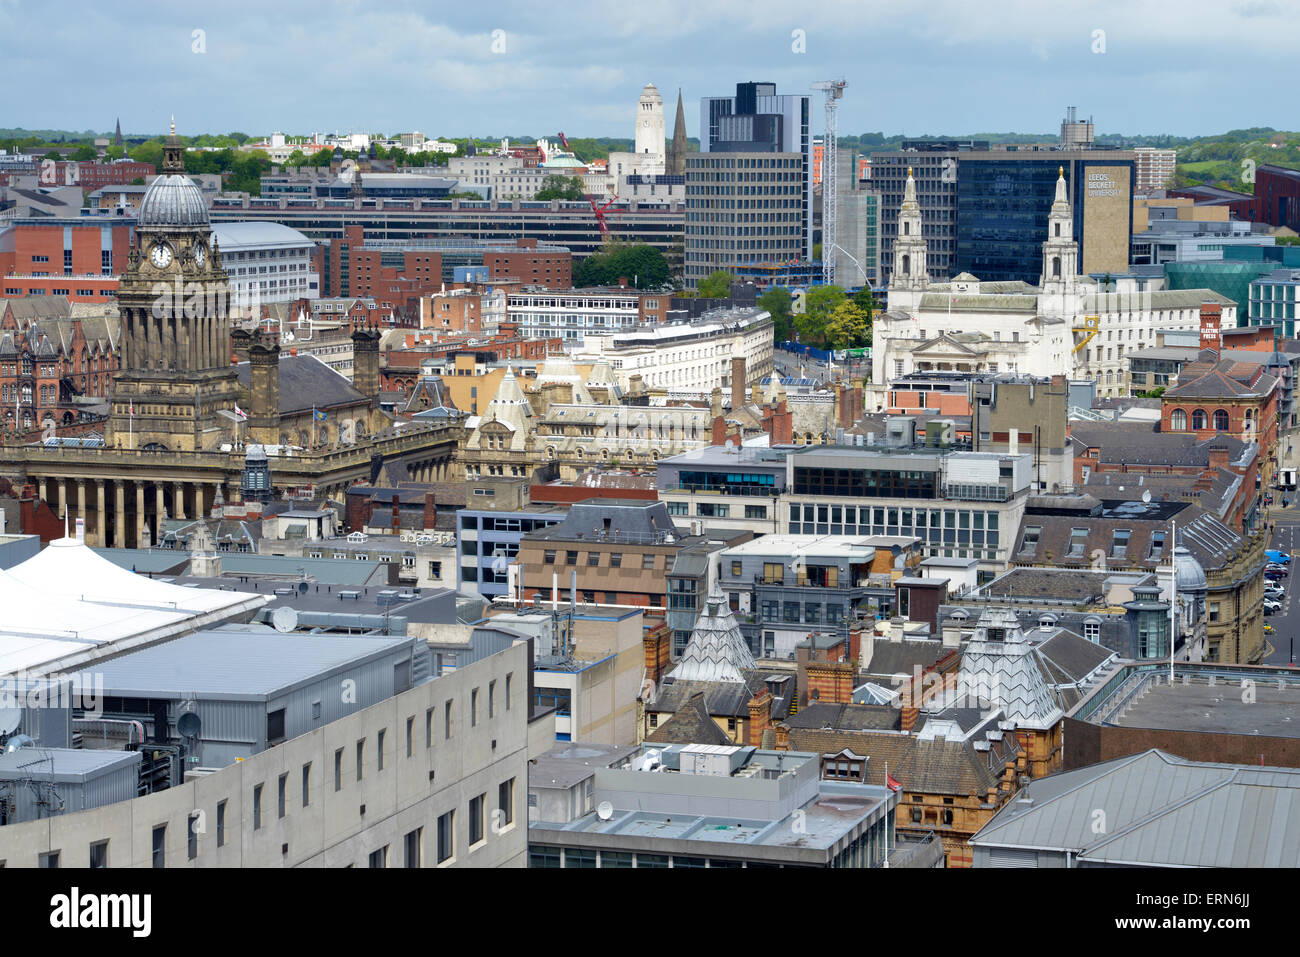 high angle view of leeds town hall, civic hall and university yorkshire united kingdom - Stock Image